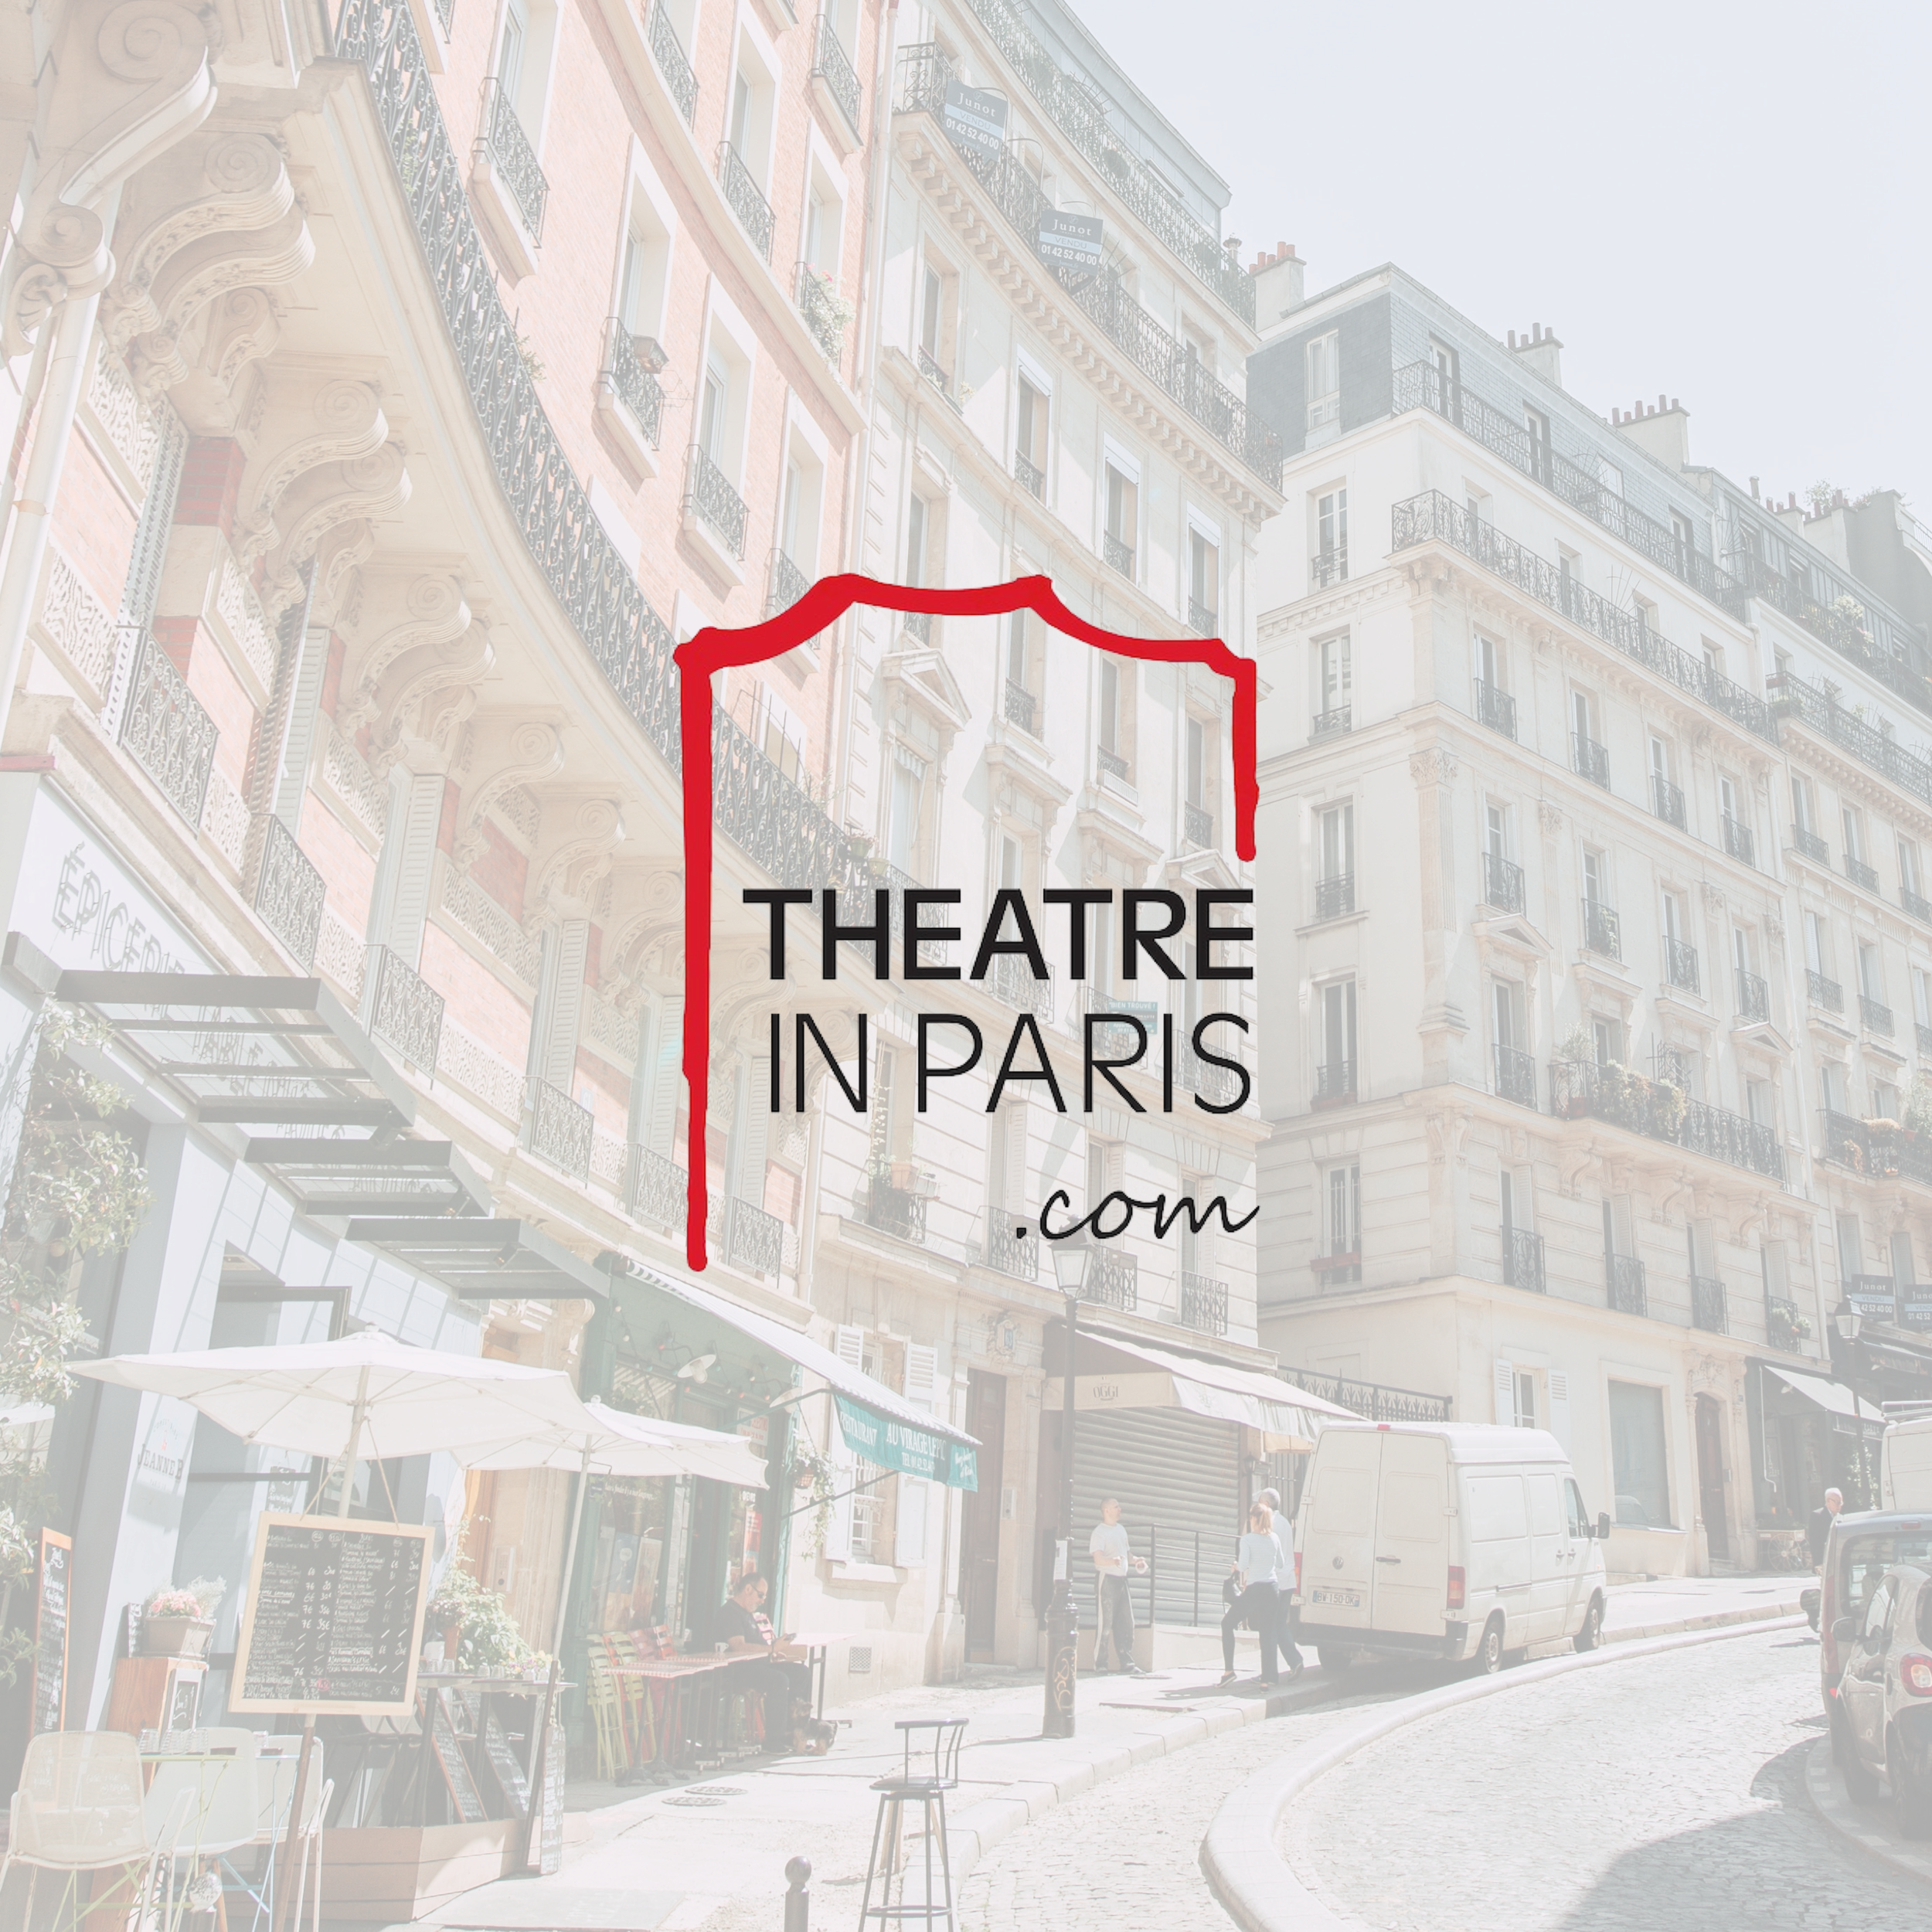 See the case study for the Theatre in Paris website revamp. - I was sent to Paris with two marketing and growth strategists to uncover the potential of a blossoming Parisian startup.